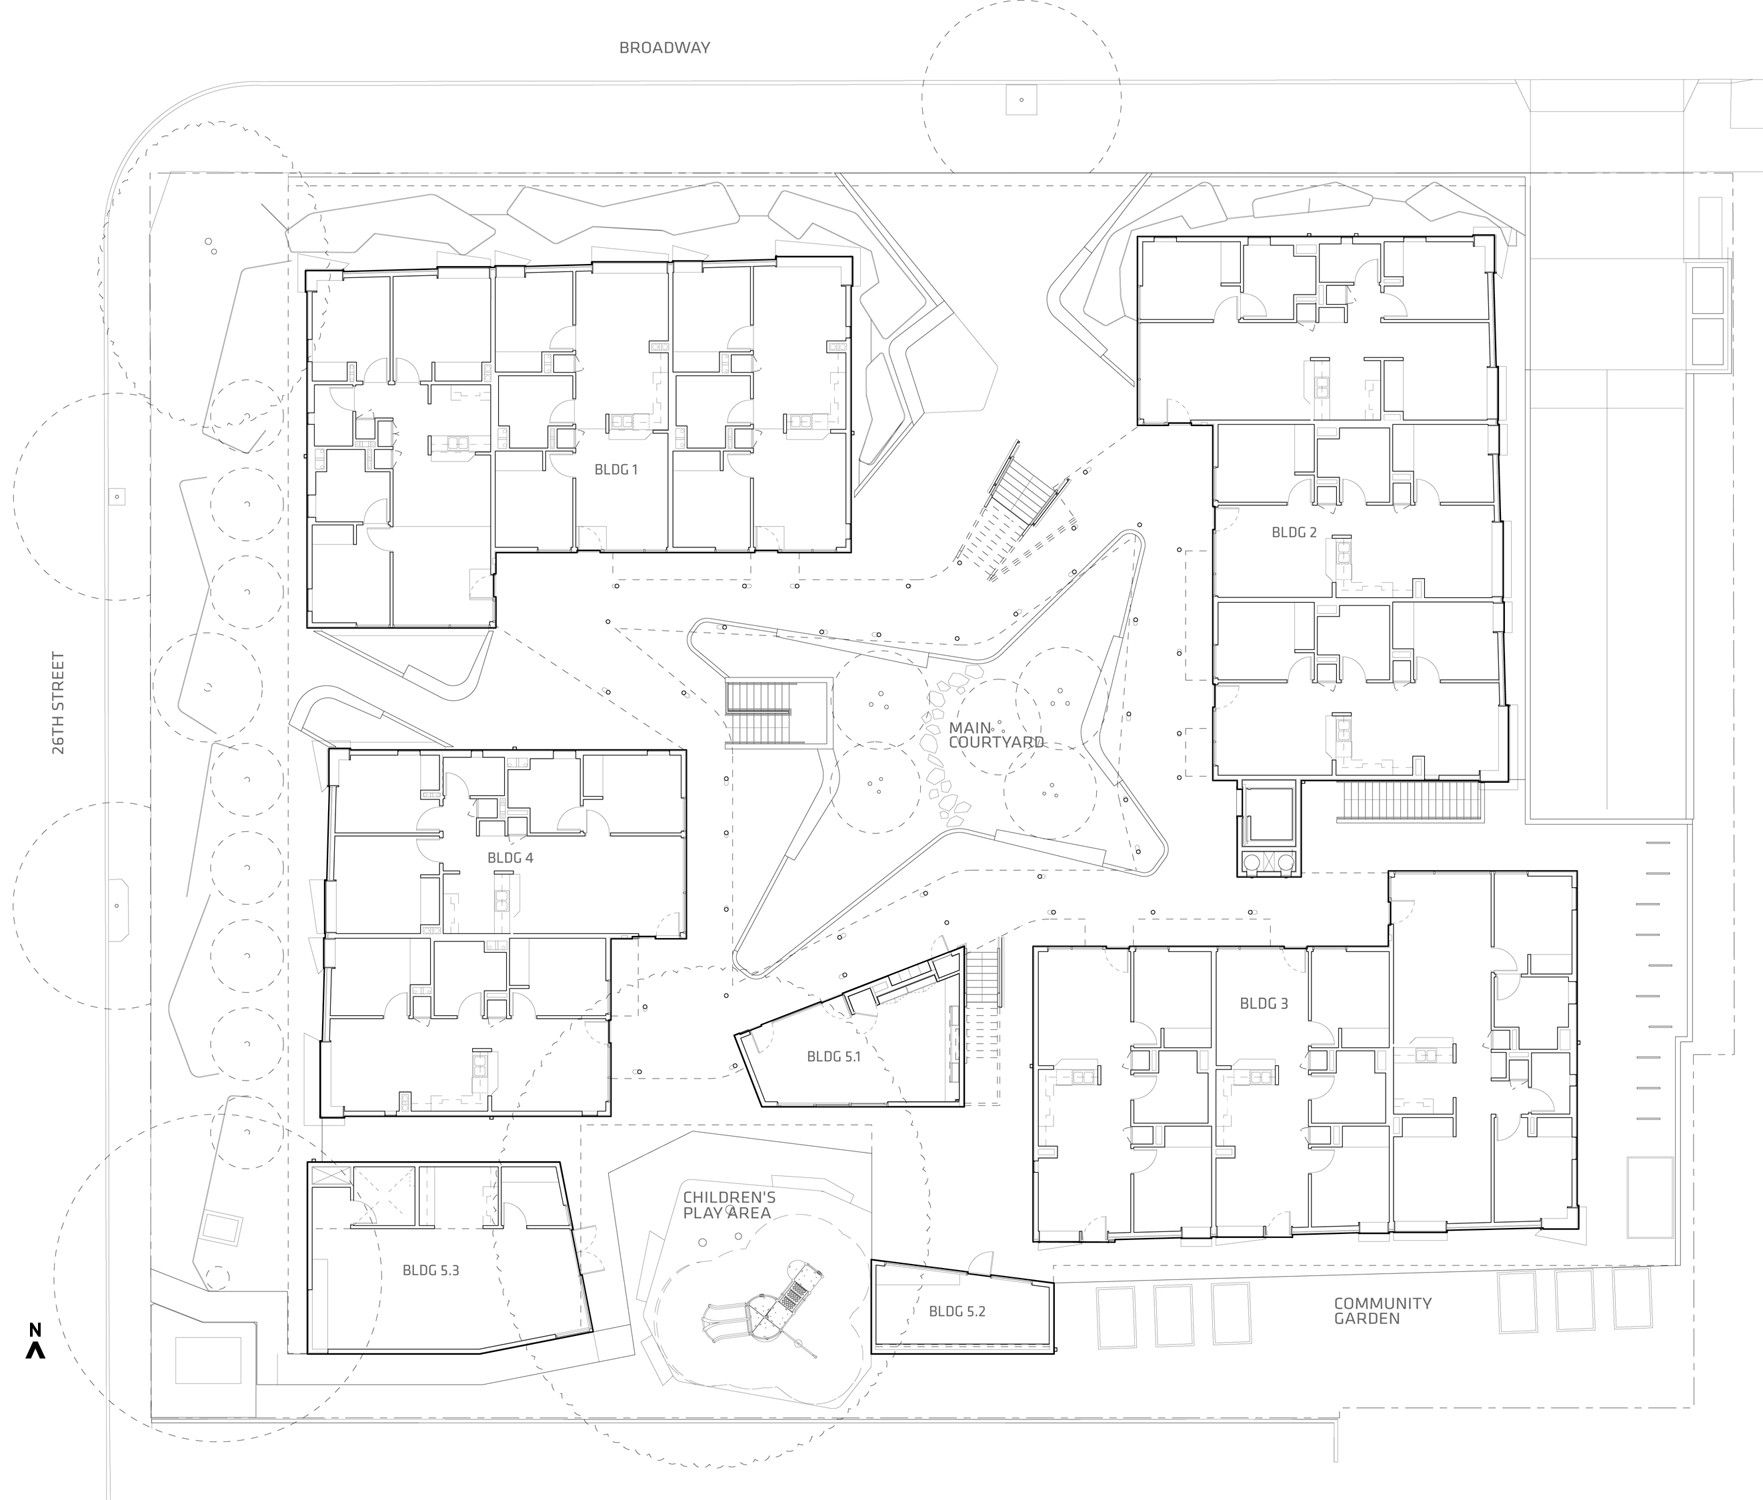 Gallery Of Broadway Housing Kevin Daly Architects 14 Site Plan Architect Architecture Site Plan